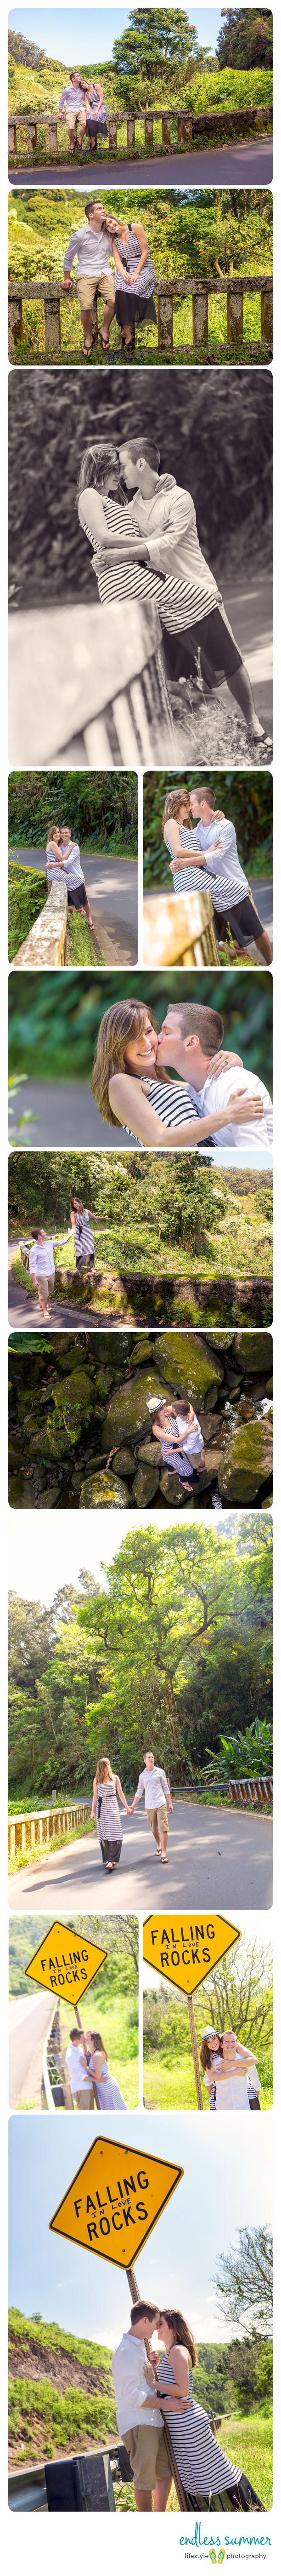 Maui Lifestyle Engagement Photography